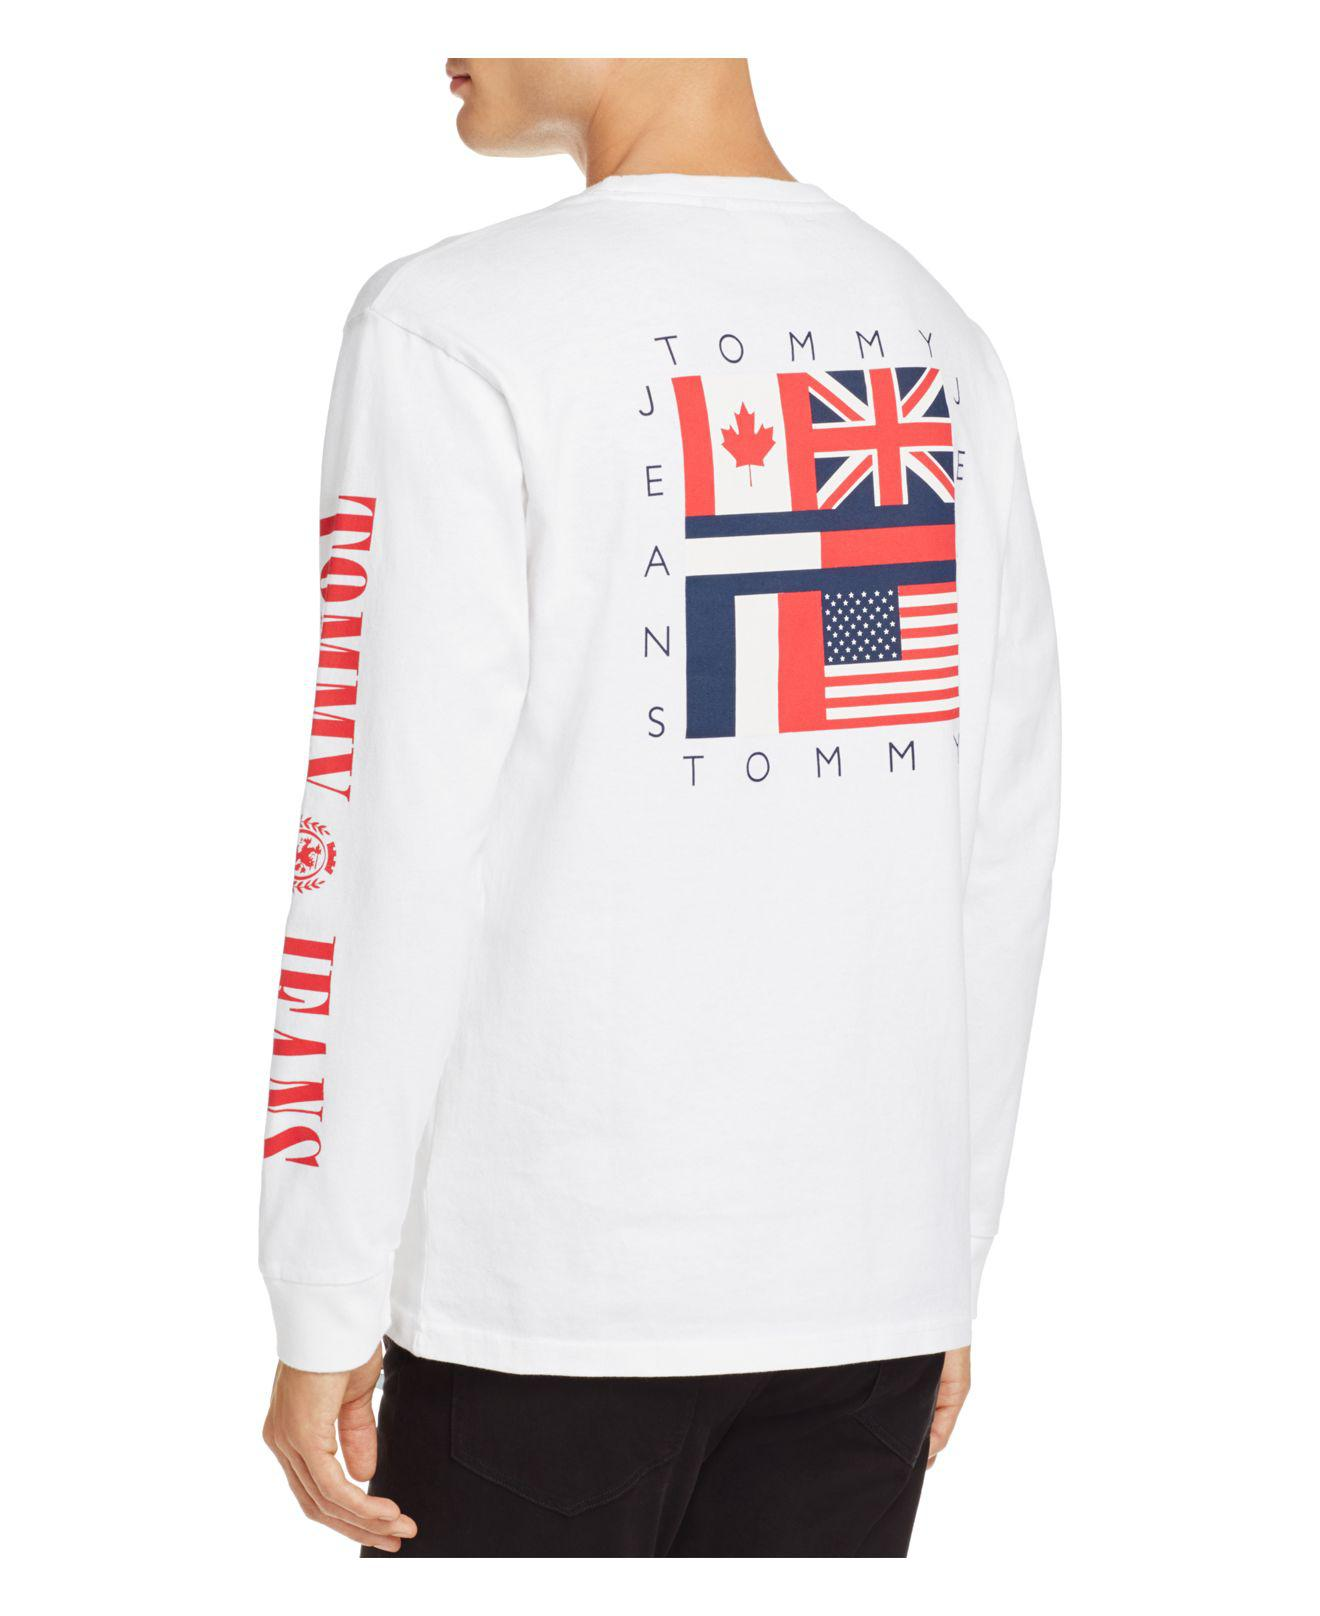 984c41f3a4c3 Tommy Hilfiger Tommy Jeans 90 s Logo Long Sleeve Crewneck Tee in ...